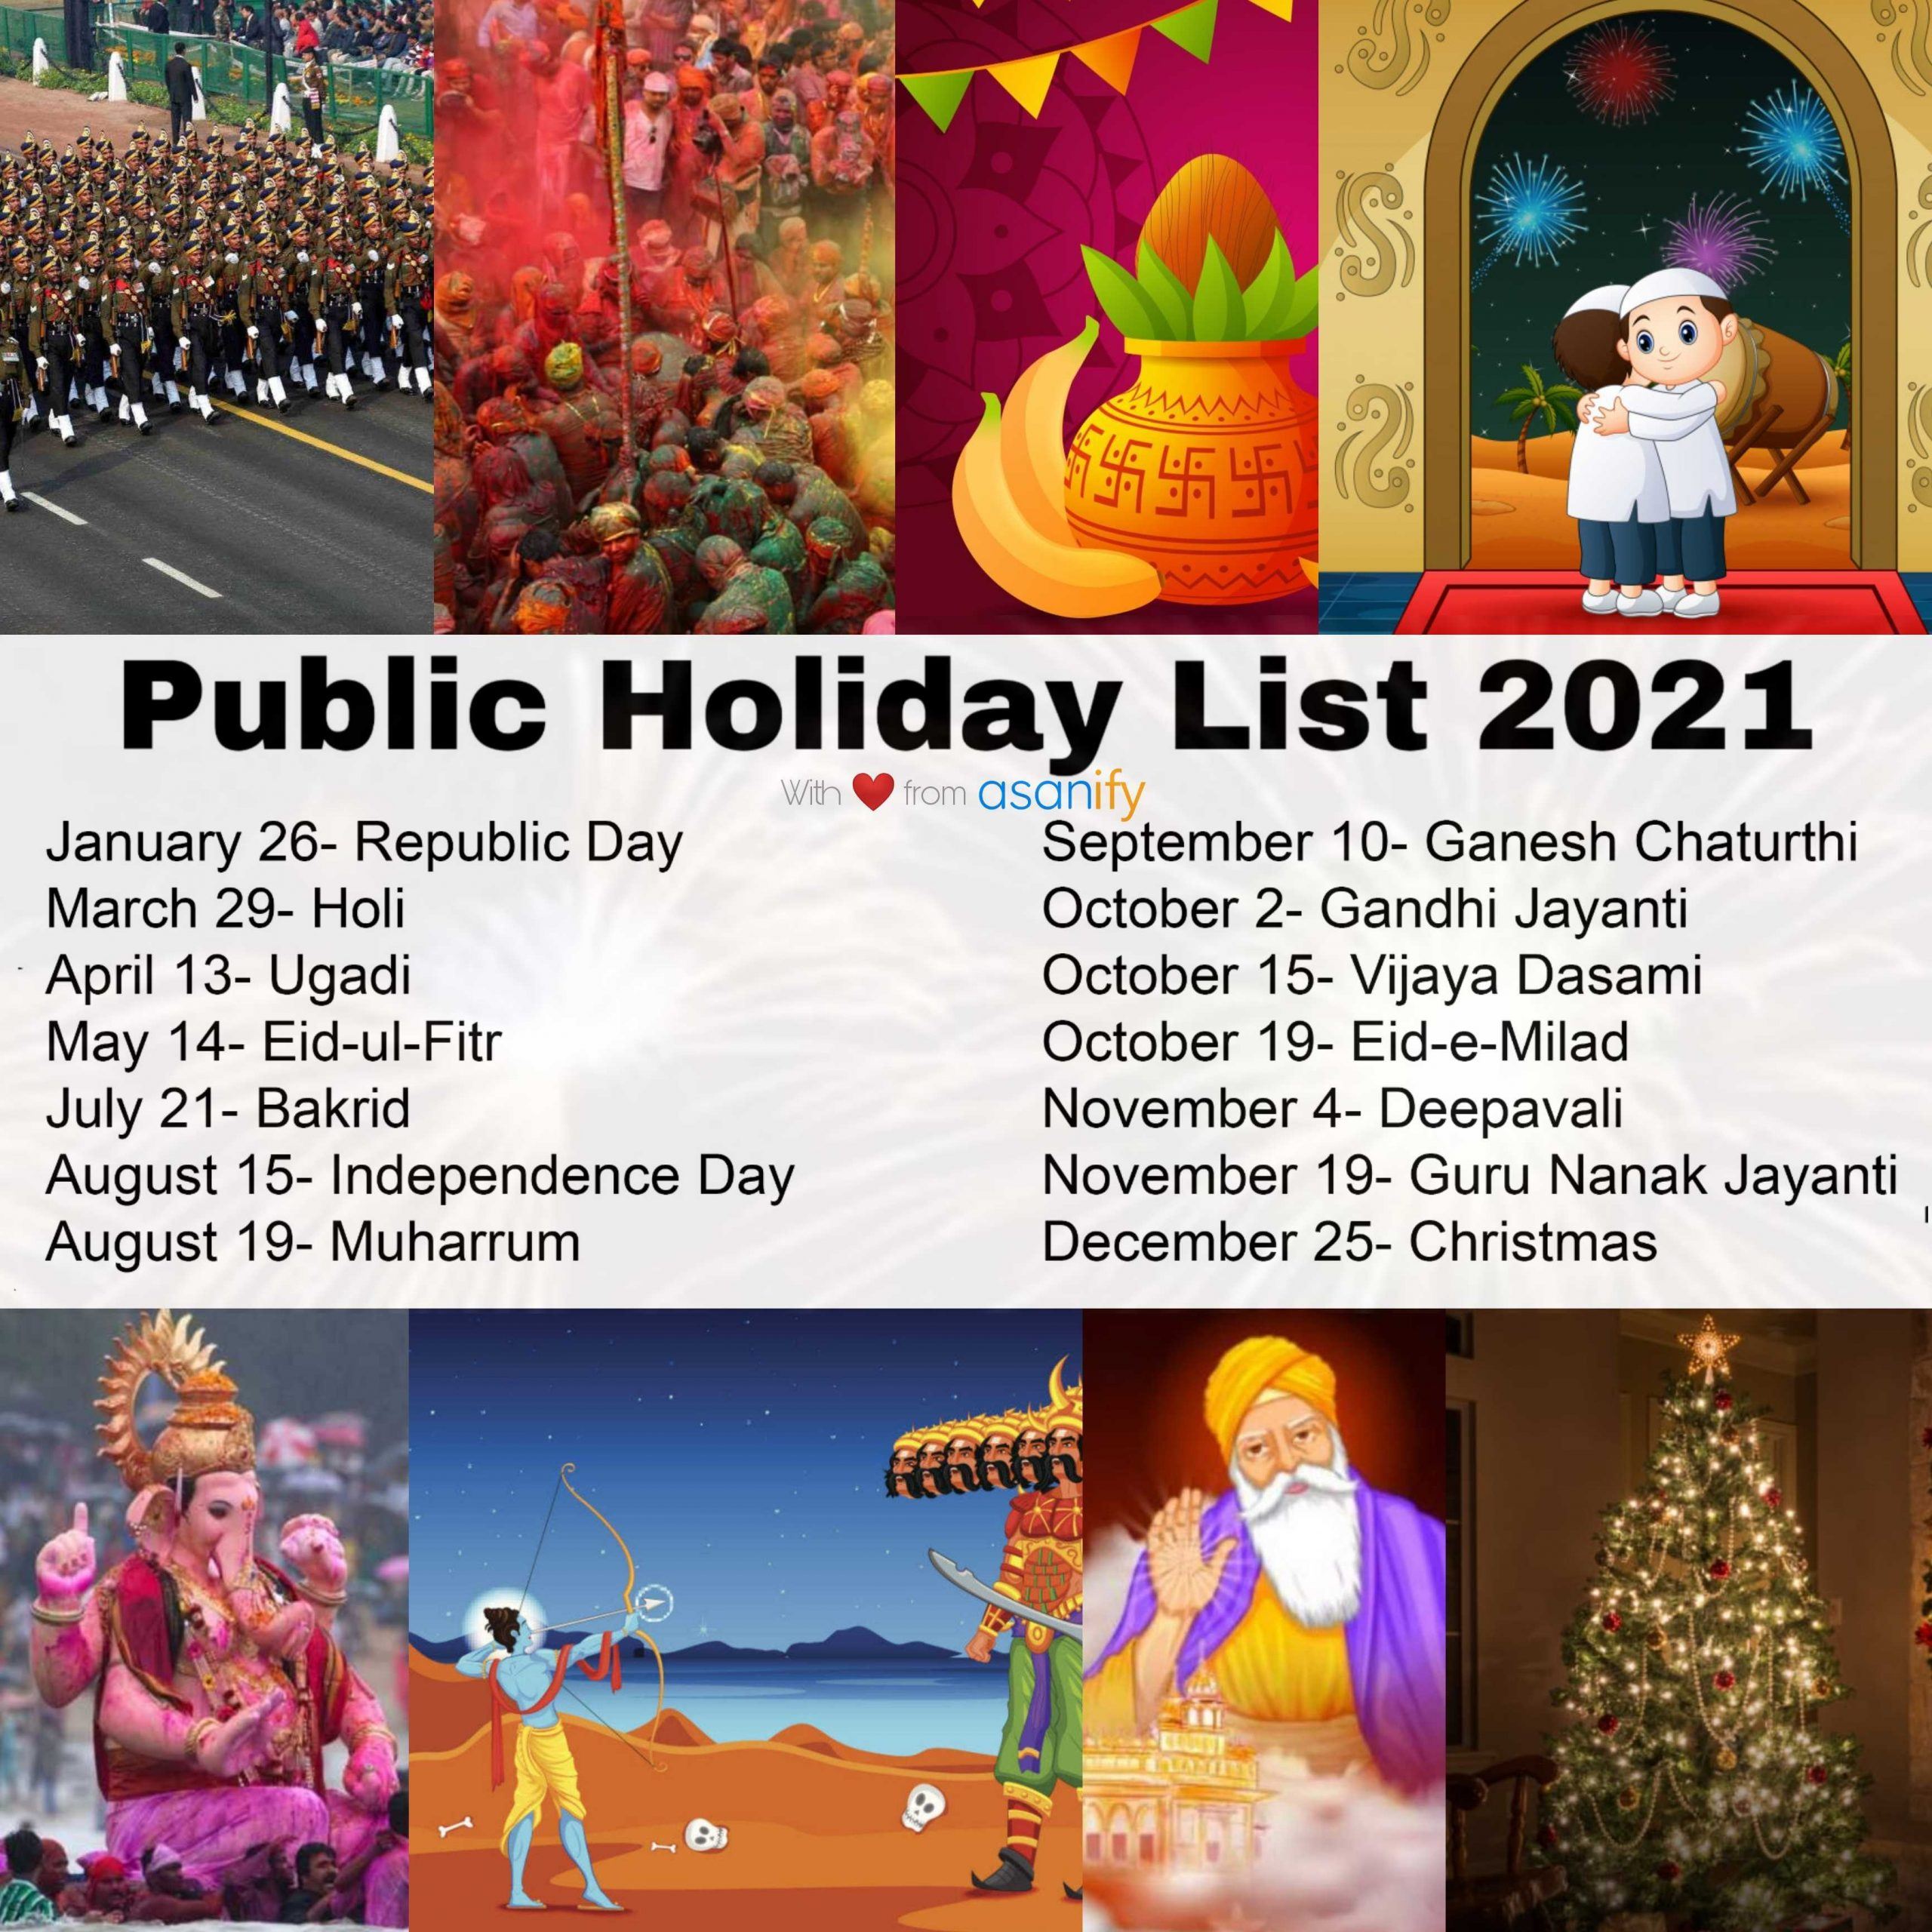 When and what are the Public Holidays in 2021?